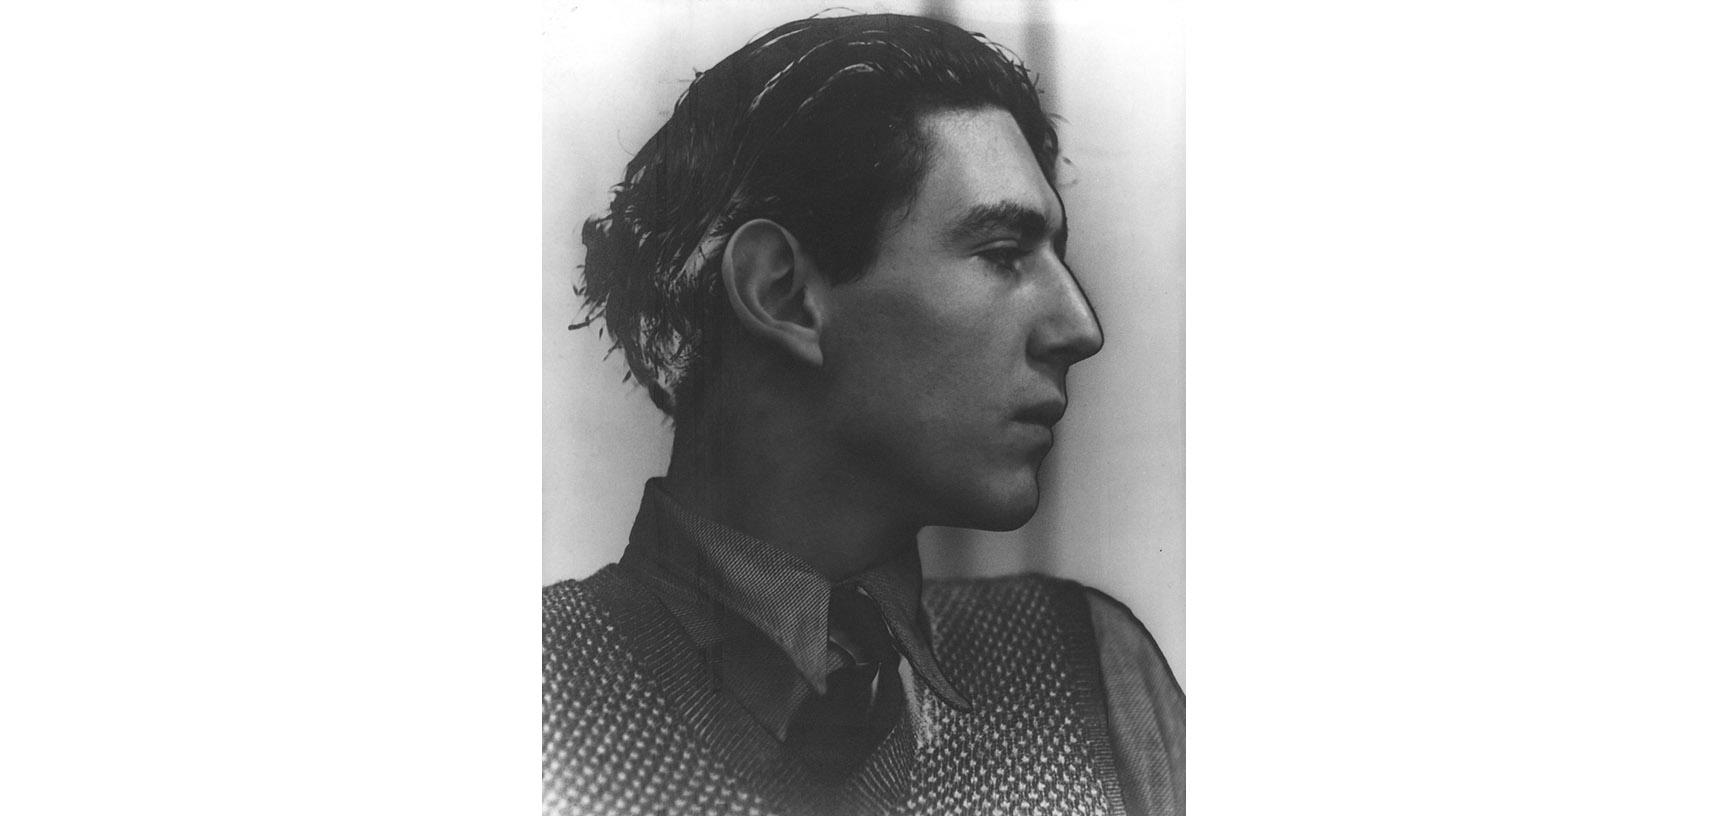 Photograph of a young man - Oliver Zangwell - in profile